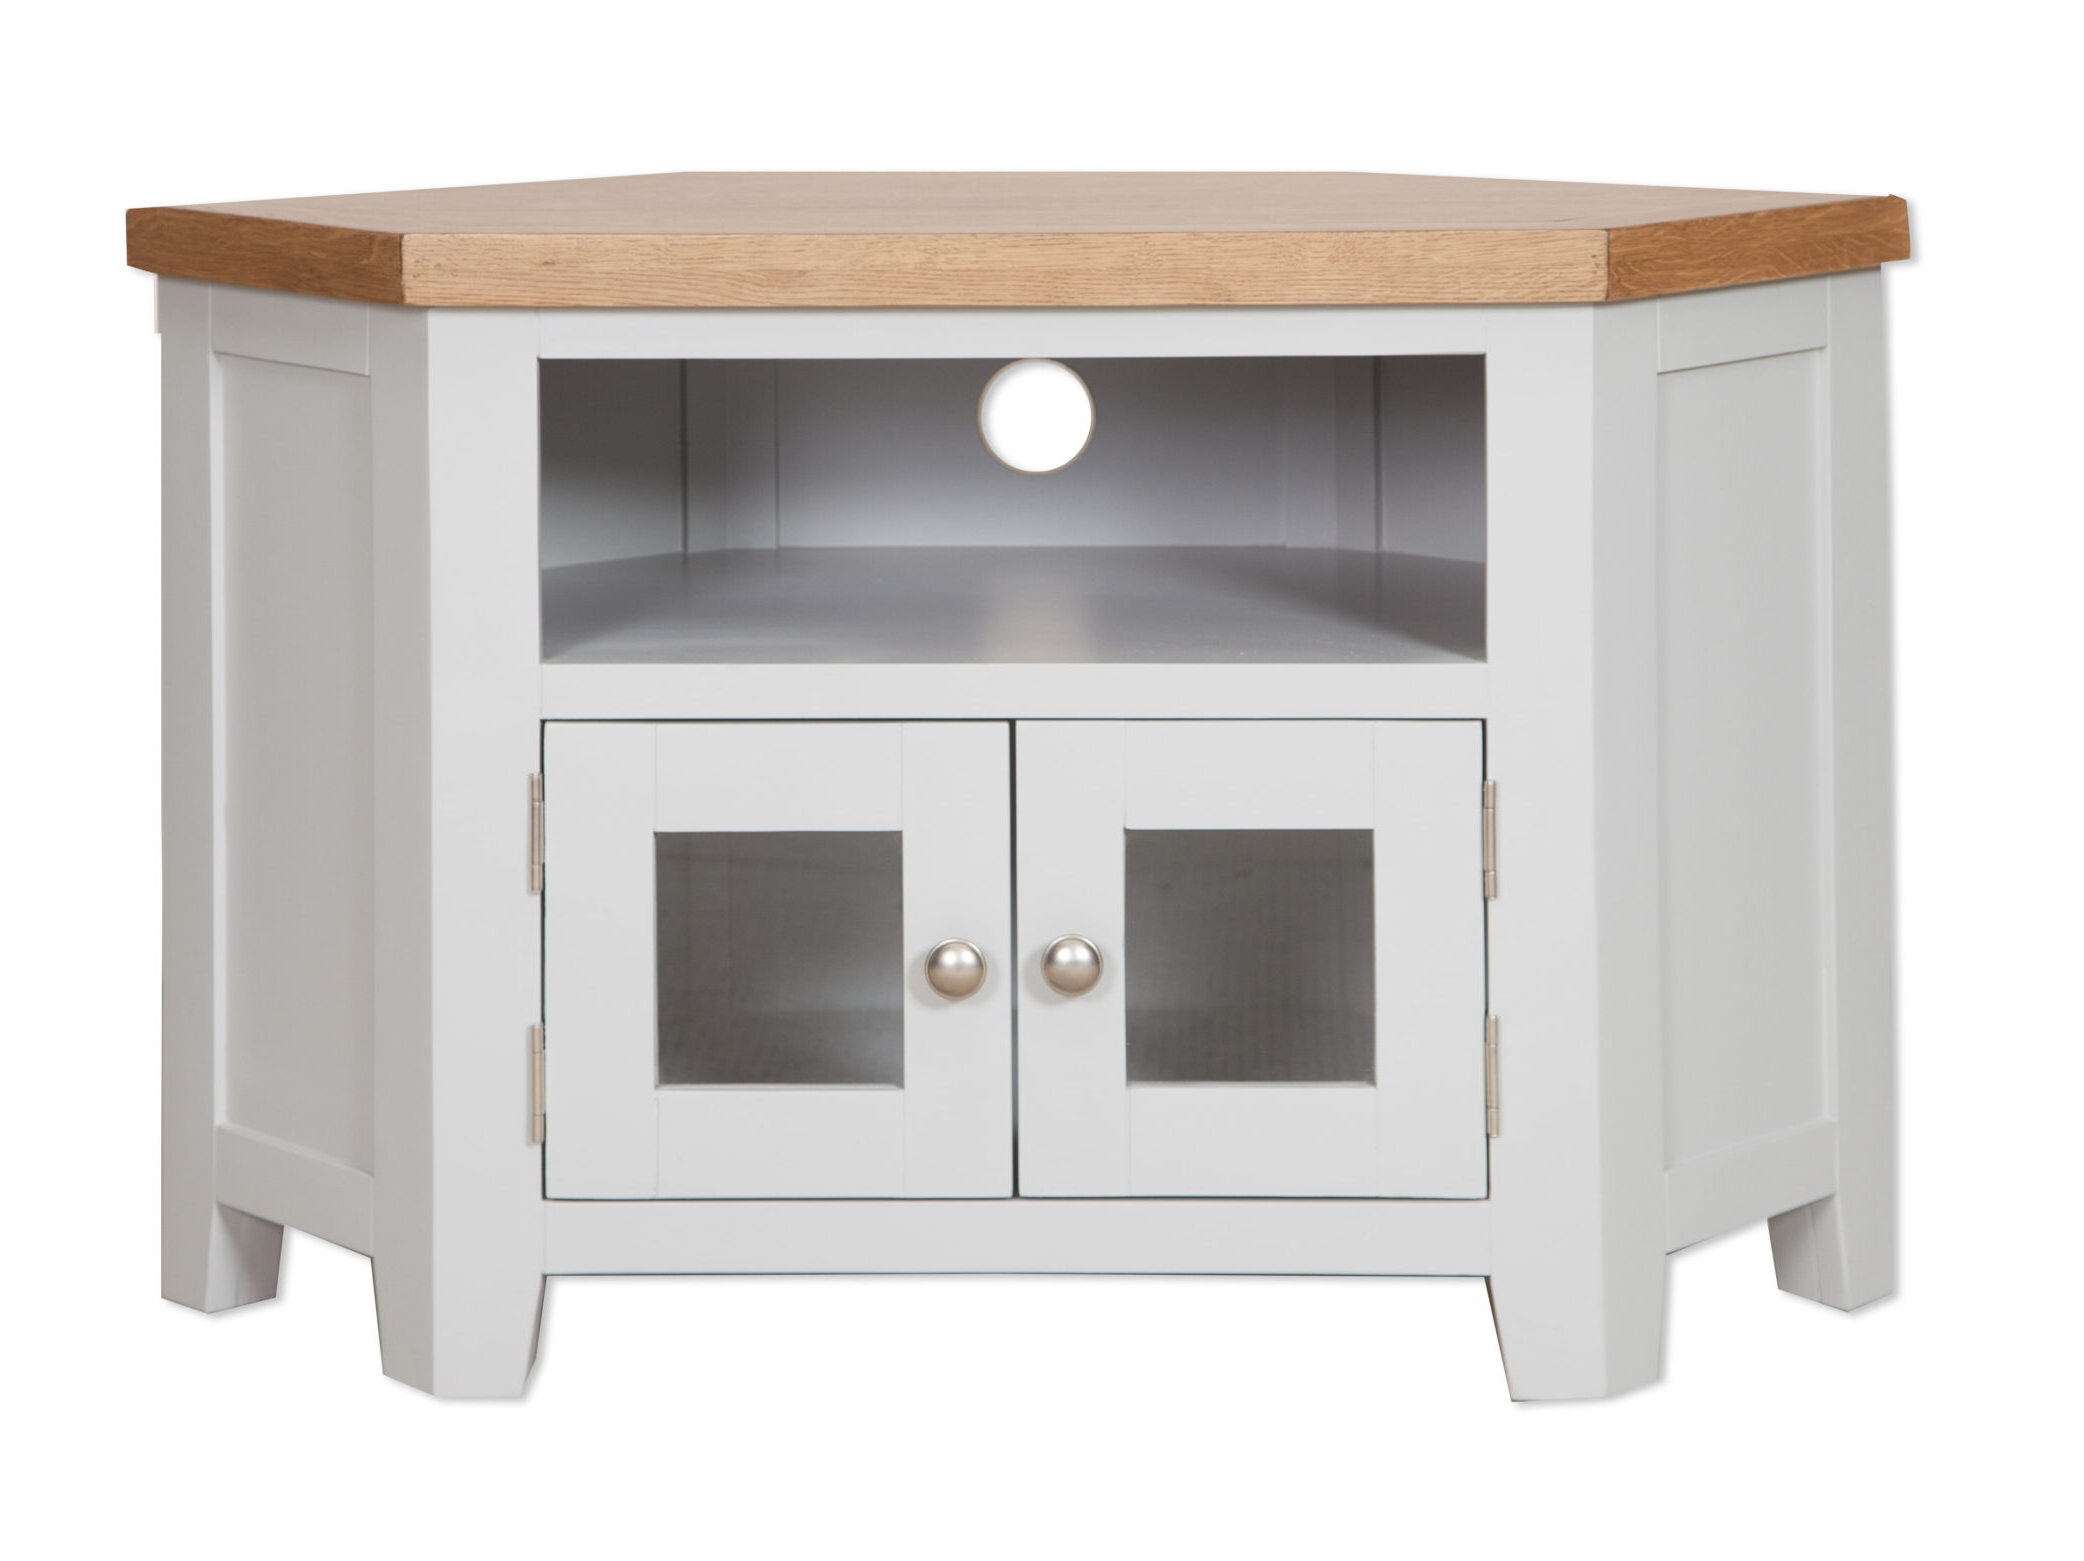 French Ivory Cream Painted Sideboard 3 Door 3 Drawer With Regard To Compton Ivory Corner Tv Stands With Baskets (View 9 of 20)